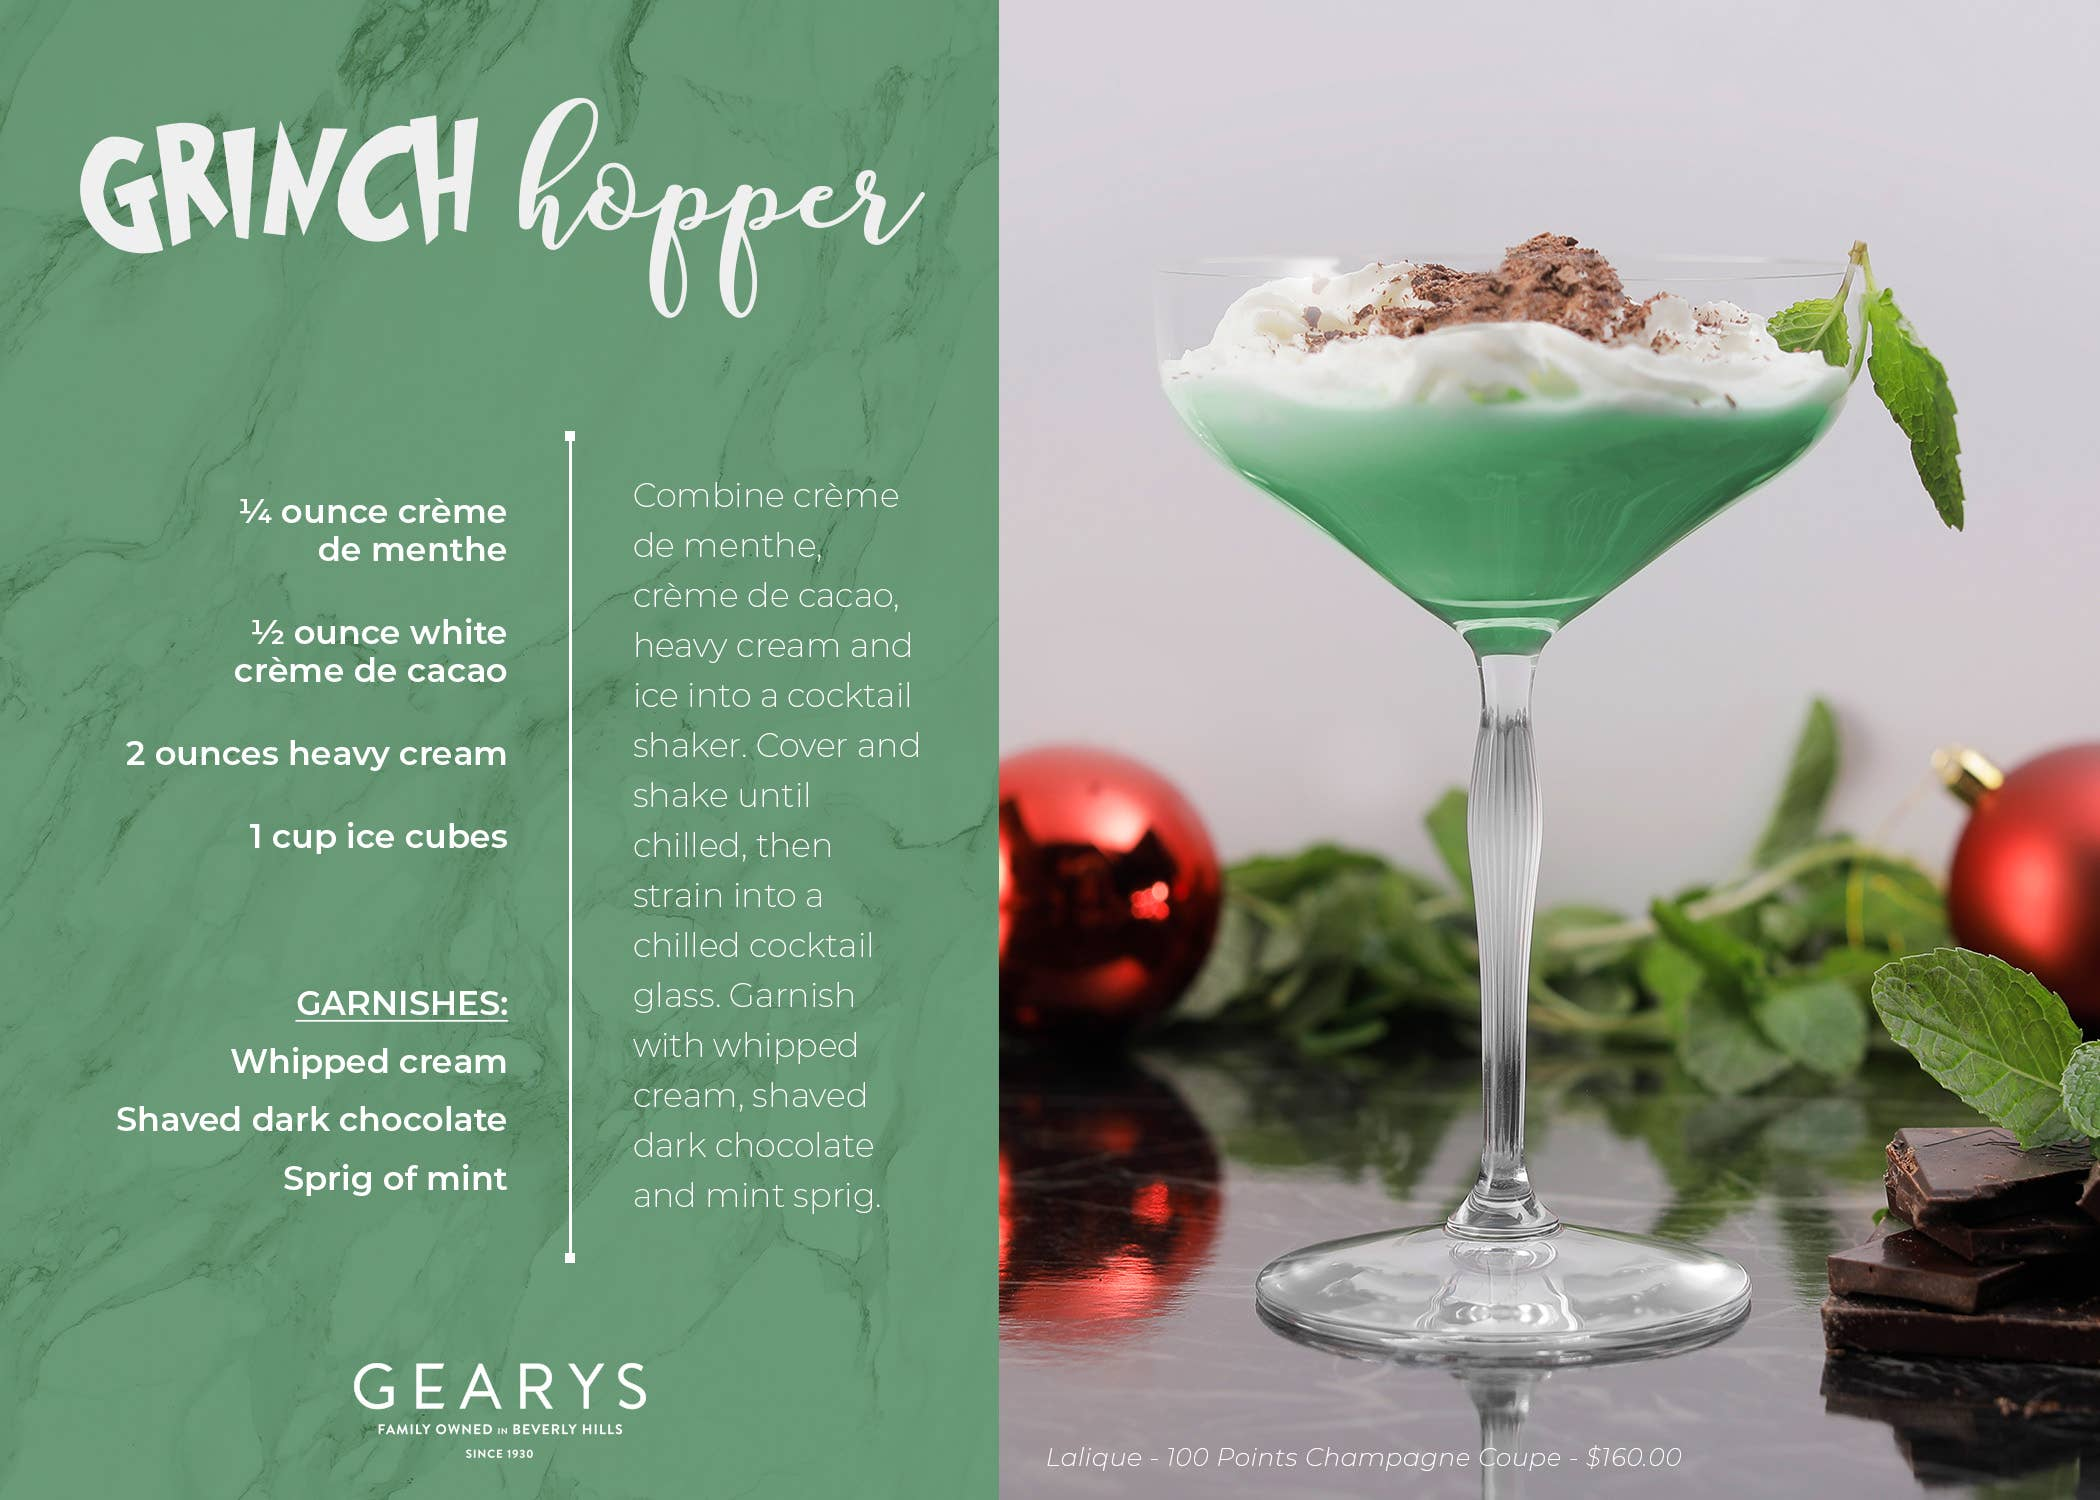 The Grinch Hopper cocktail recipe card